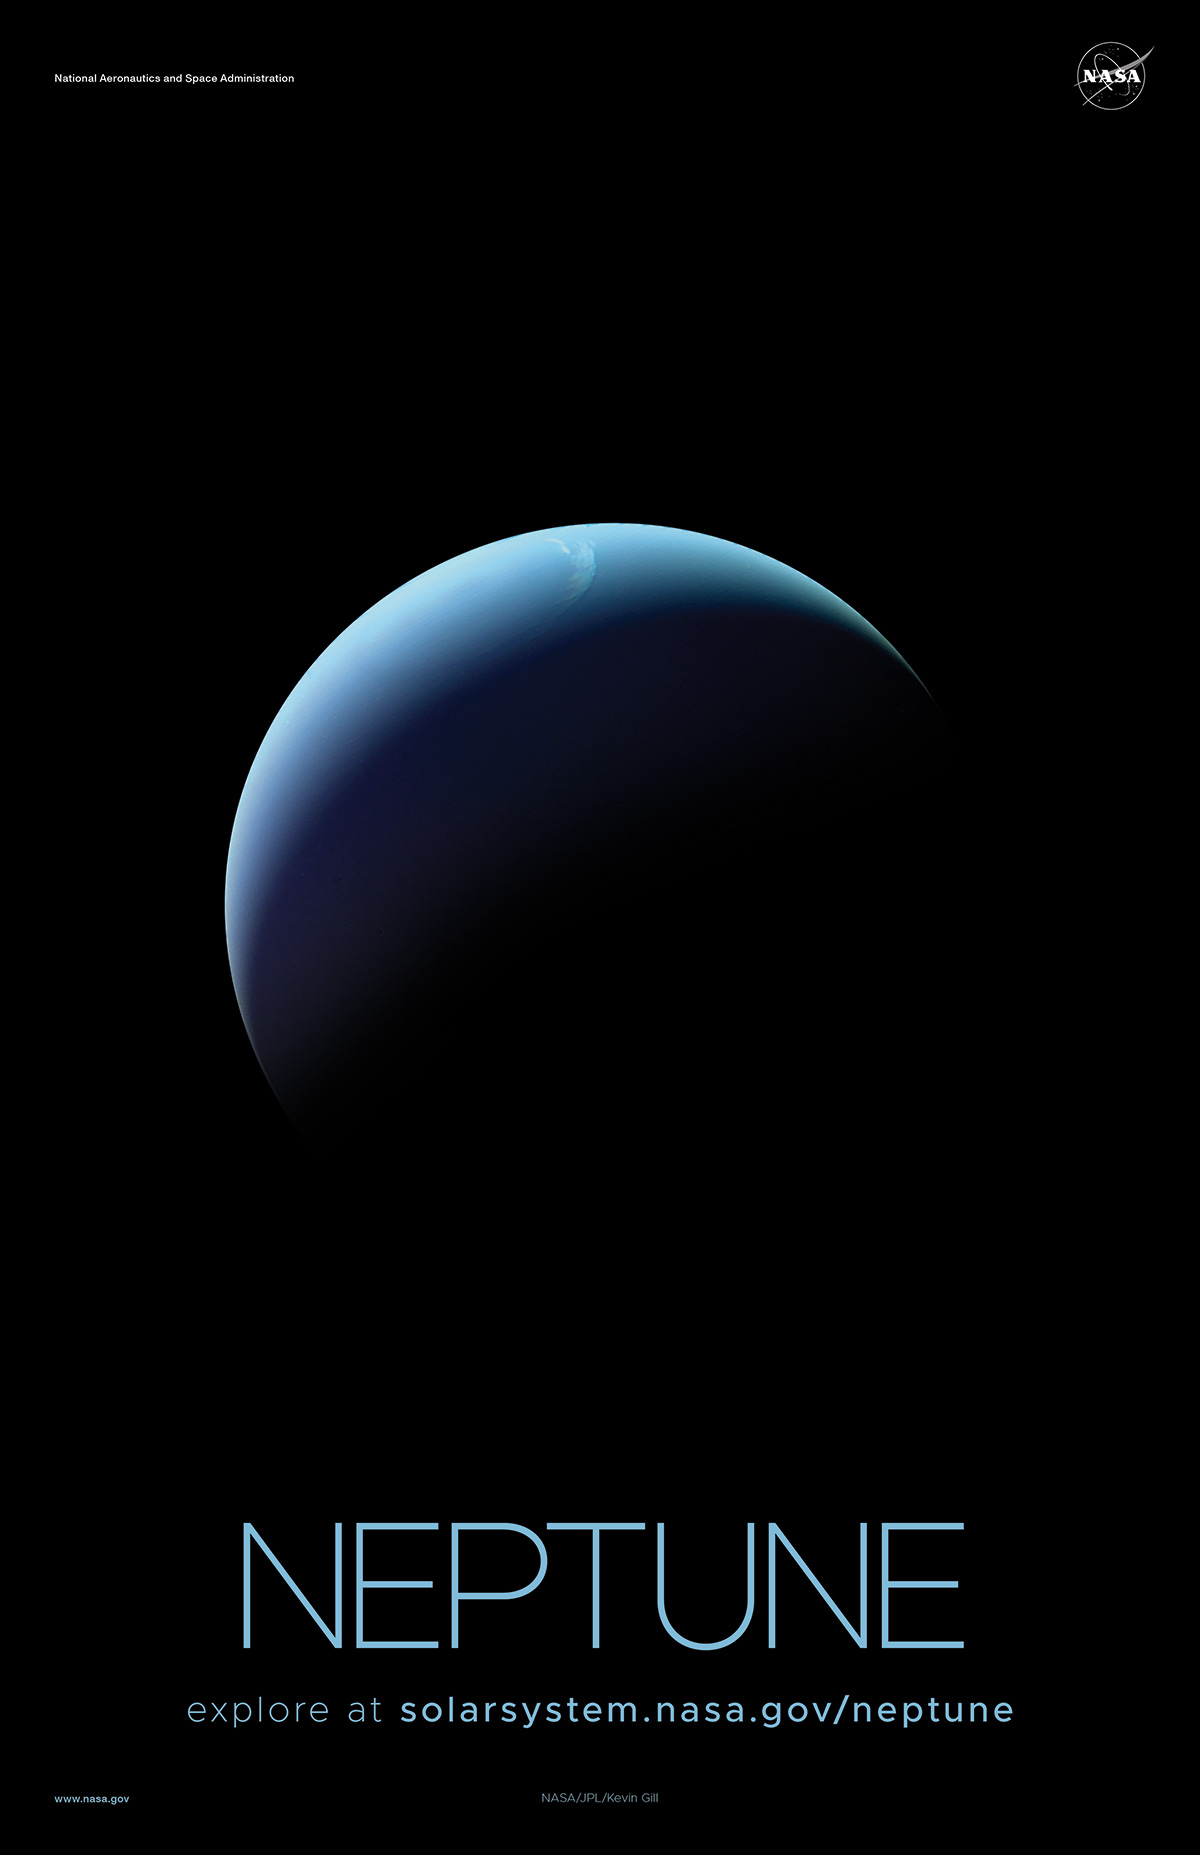 Crescent view of Neptune.